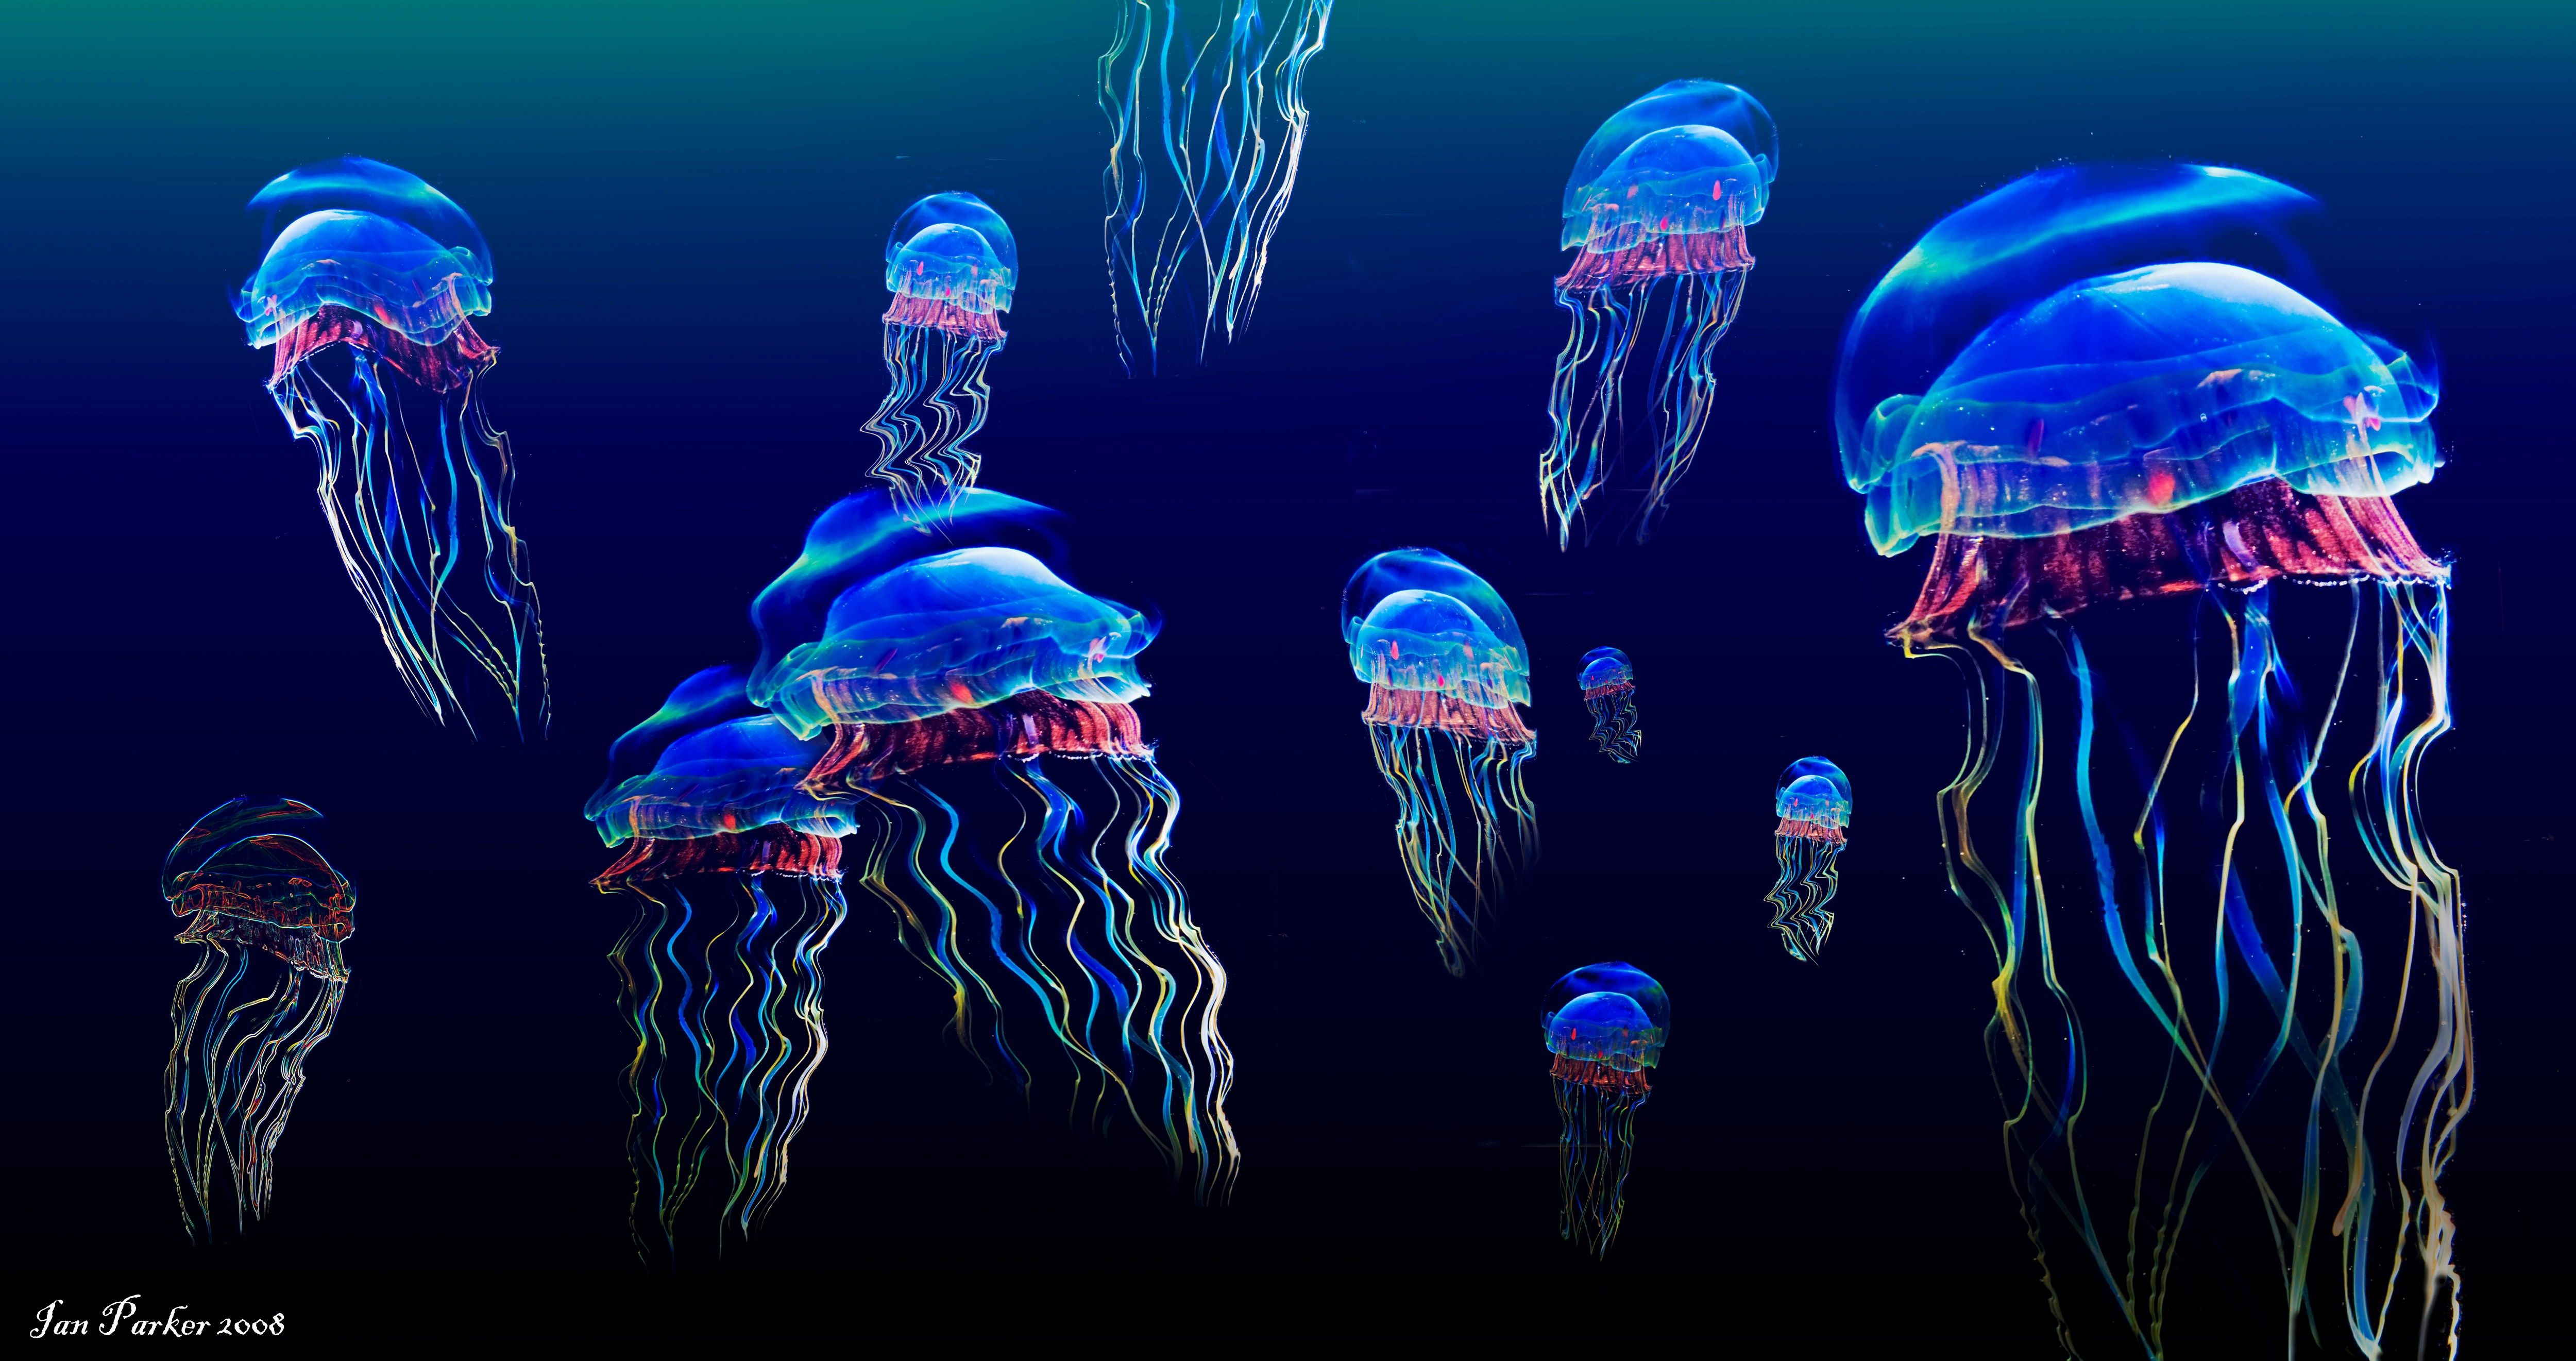 5000x2641 free desktop backgrounds for jellyfish